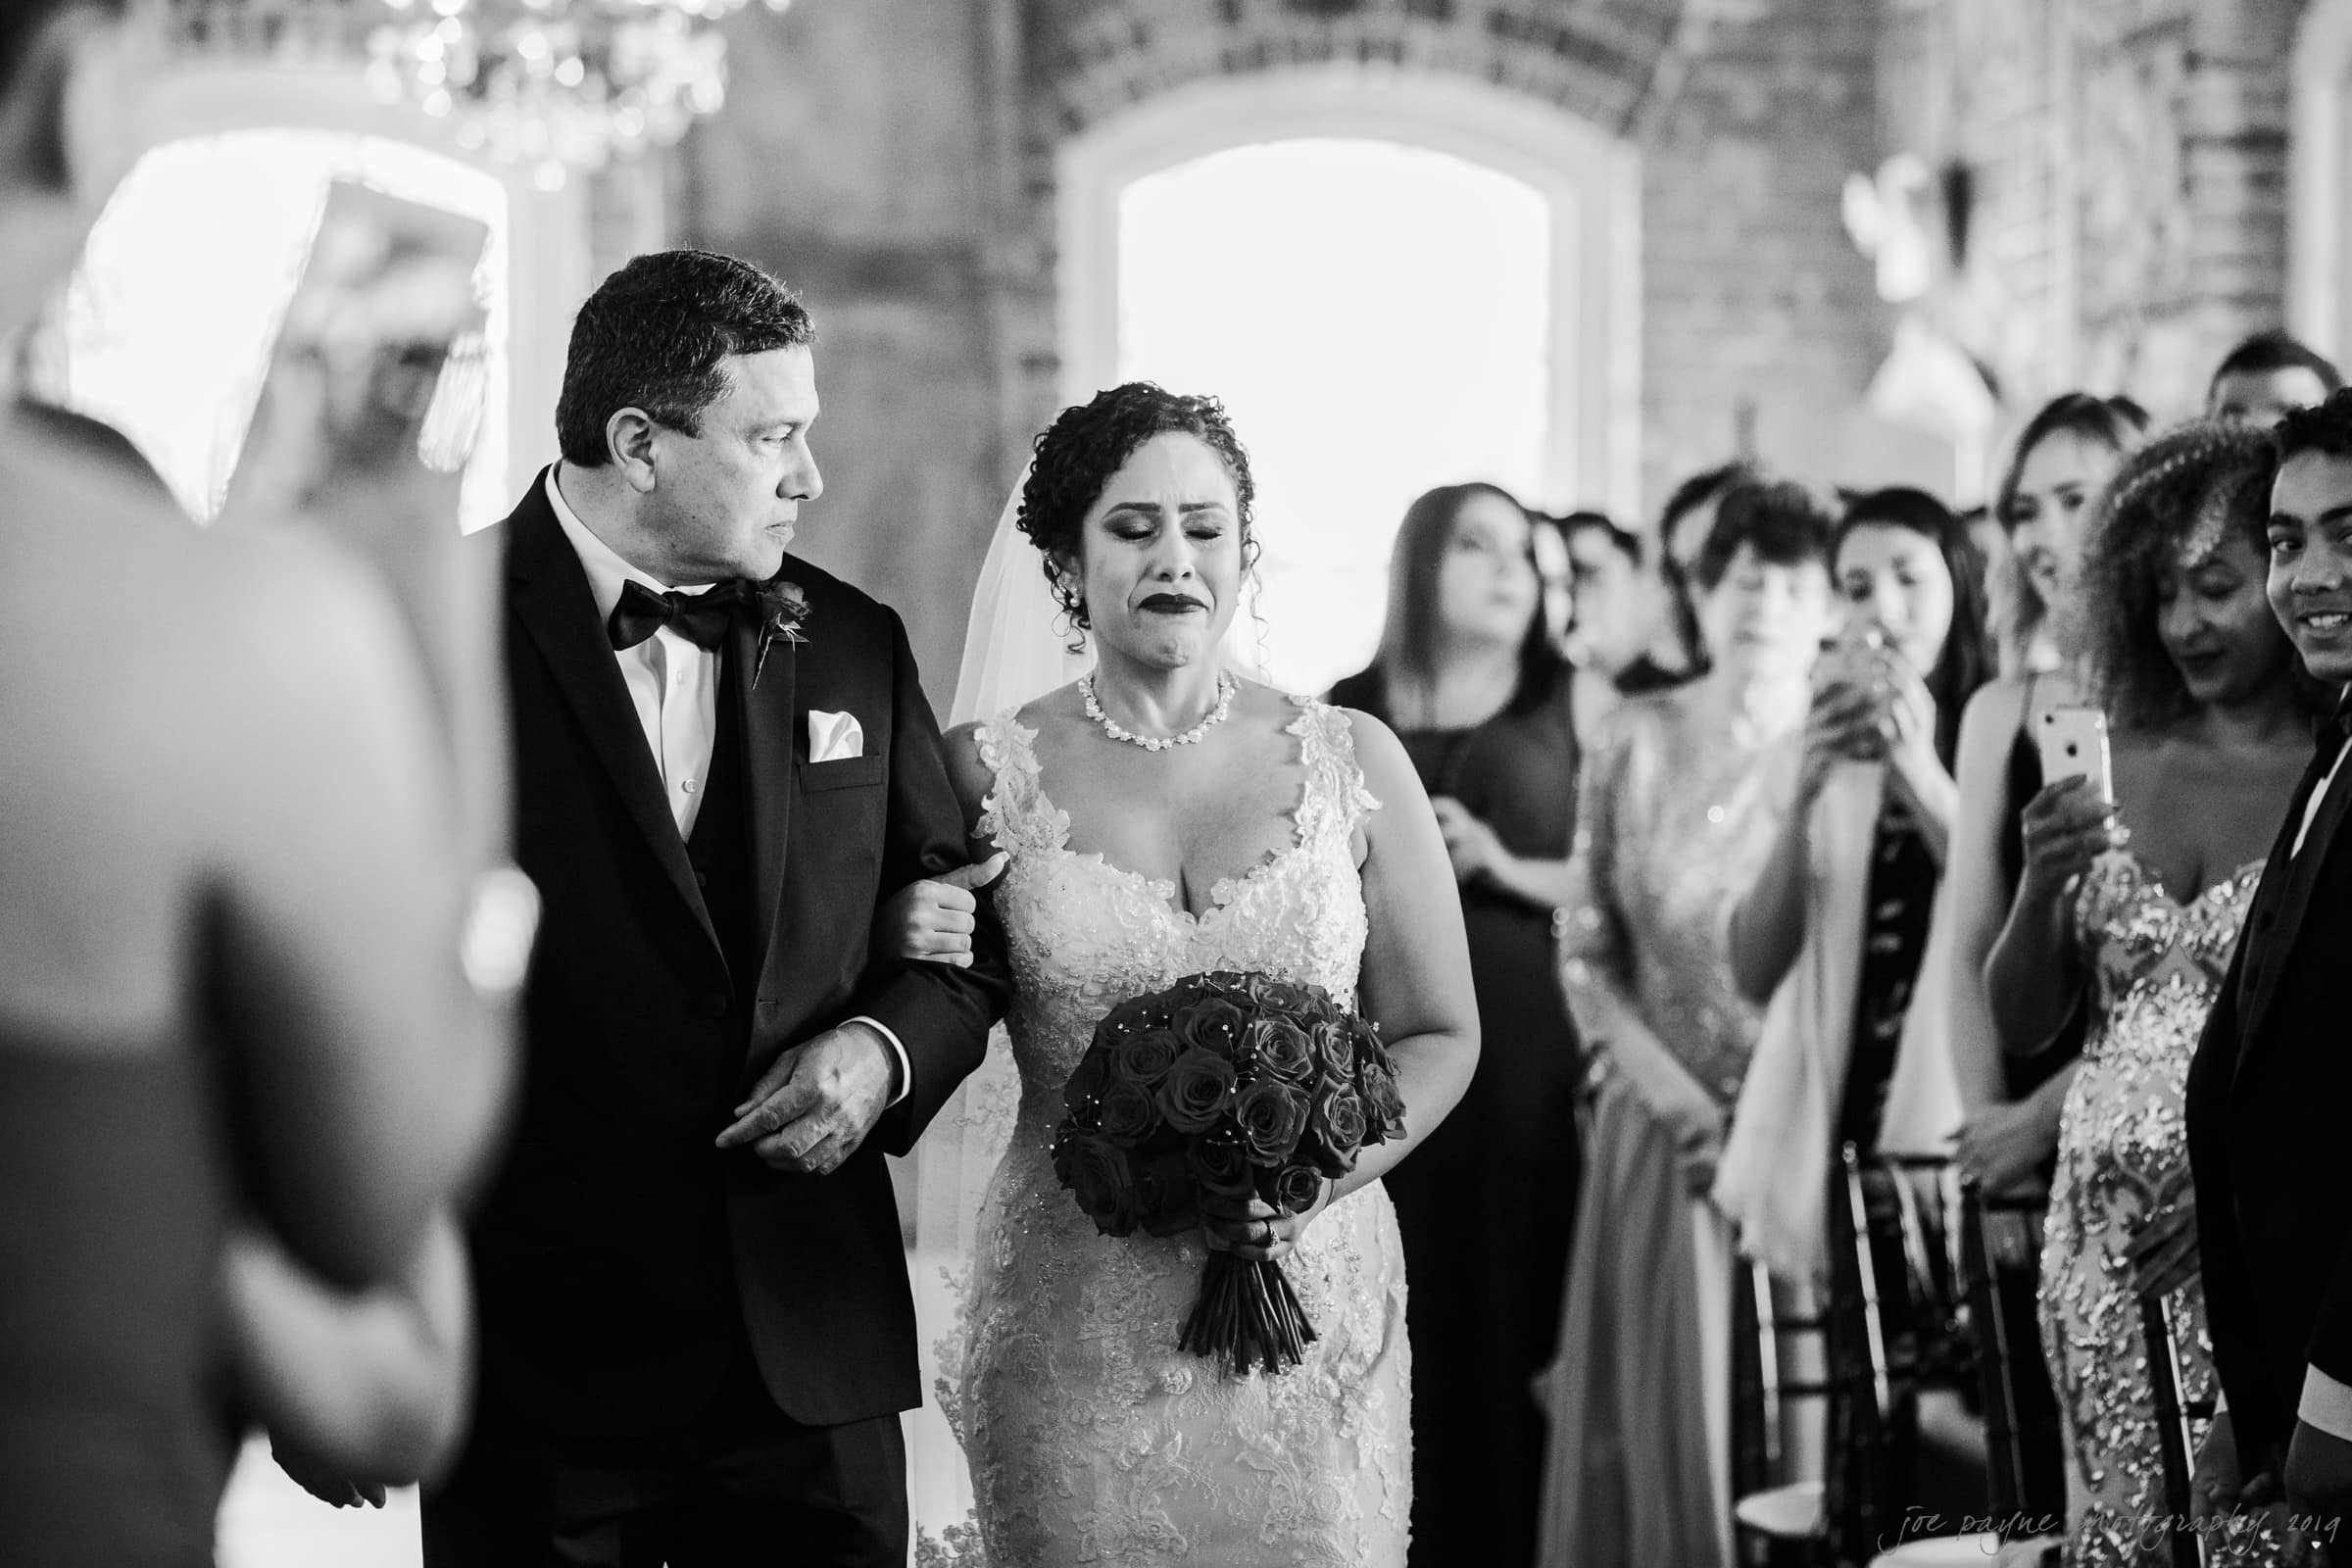 melrose knitting mill raleigh wedding photographer melanie anthony 20